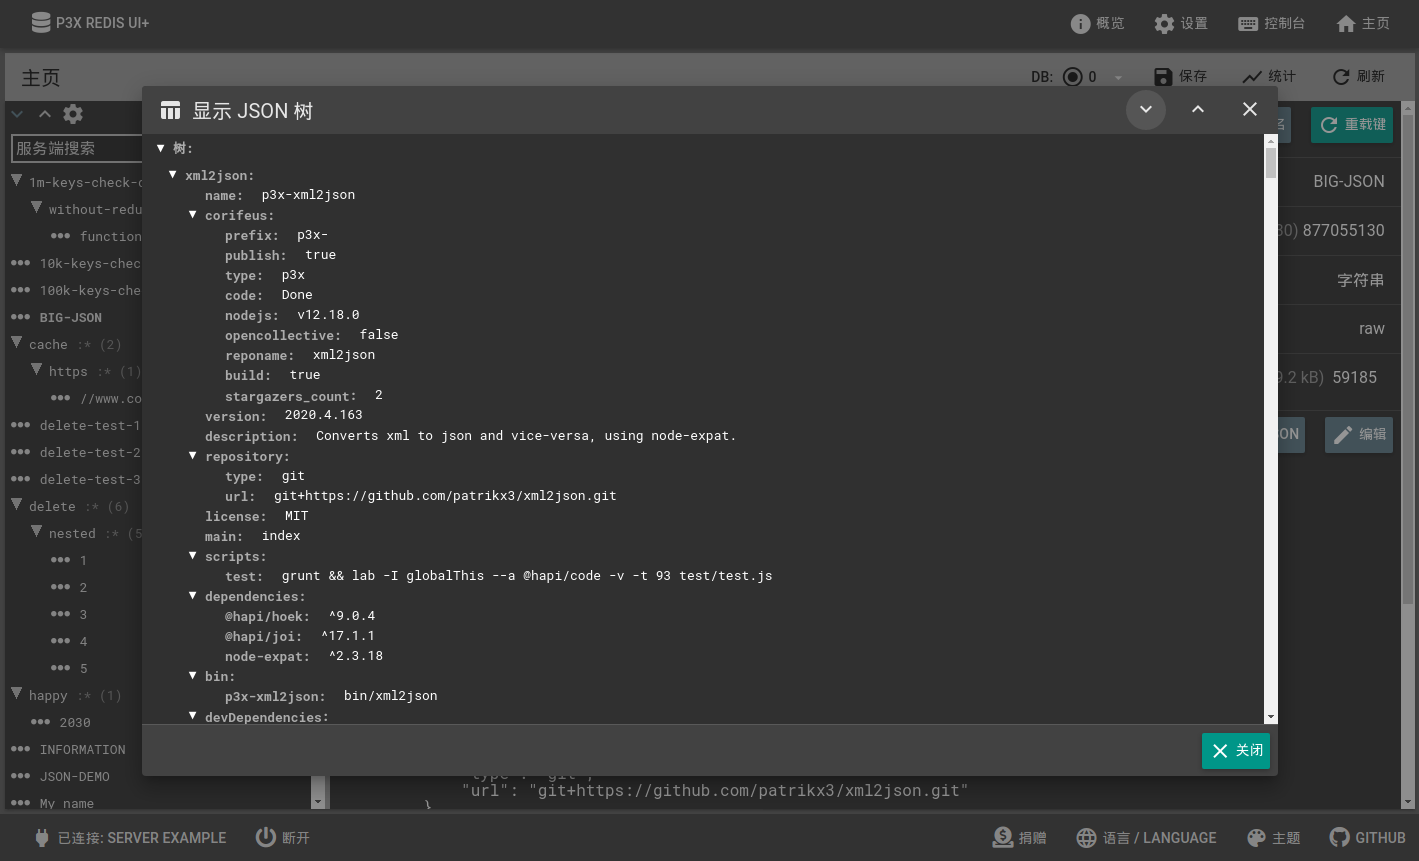 http://cdn.corifeus.com/git/redis-ui/artifacts/preview-images/preview-2.png